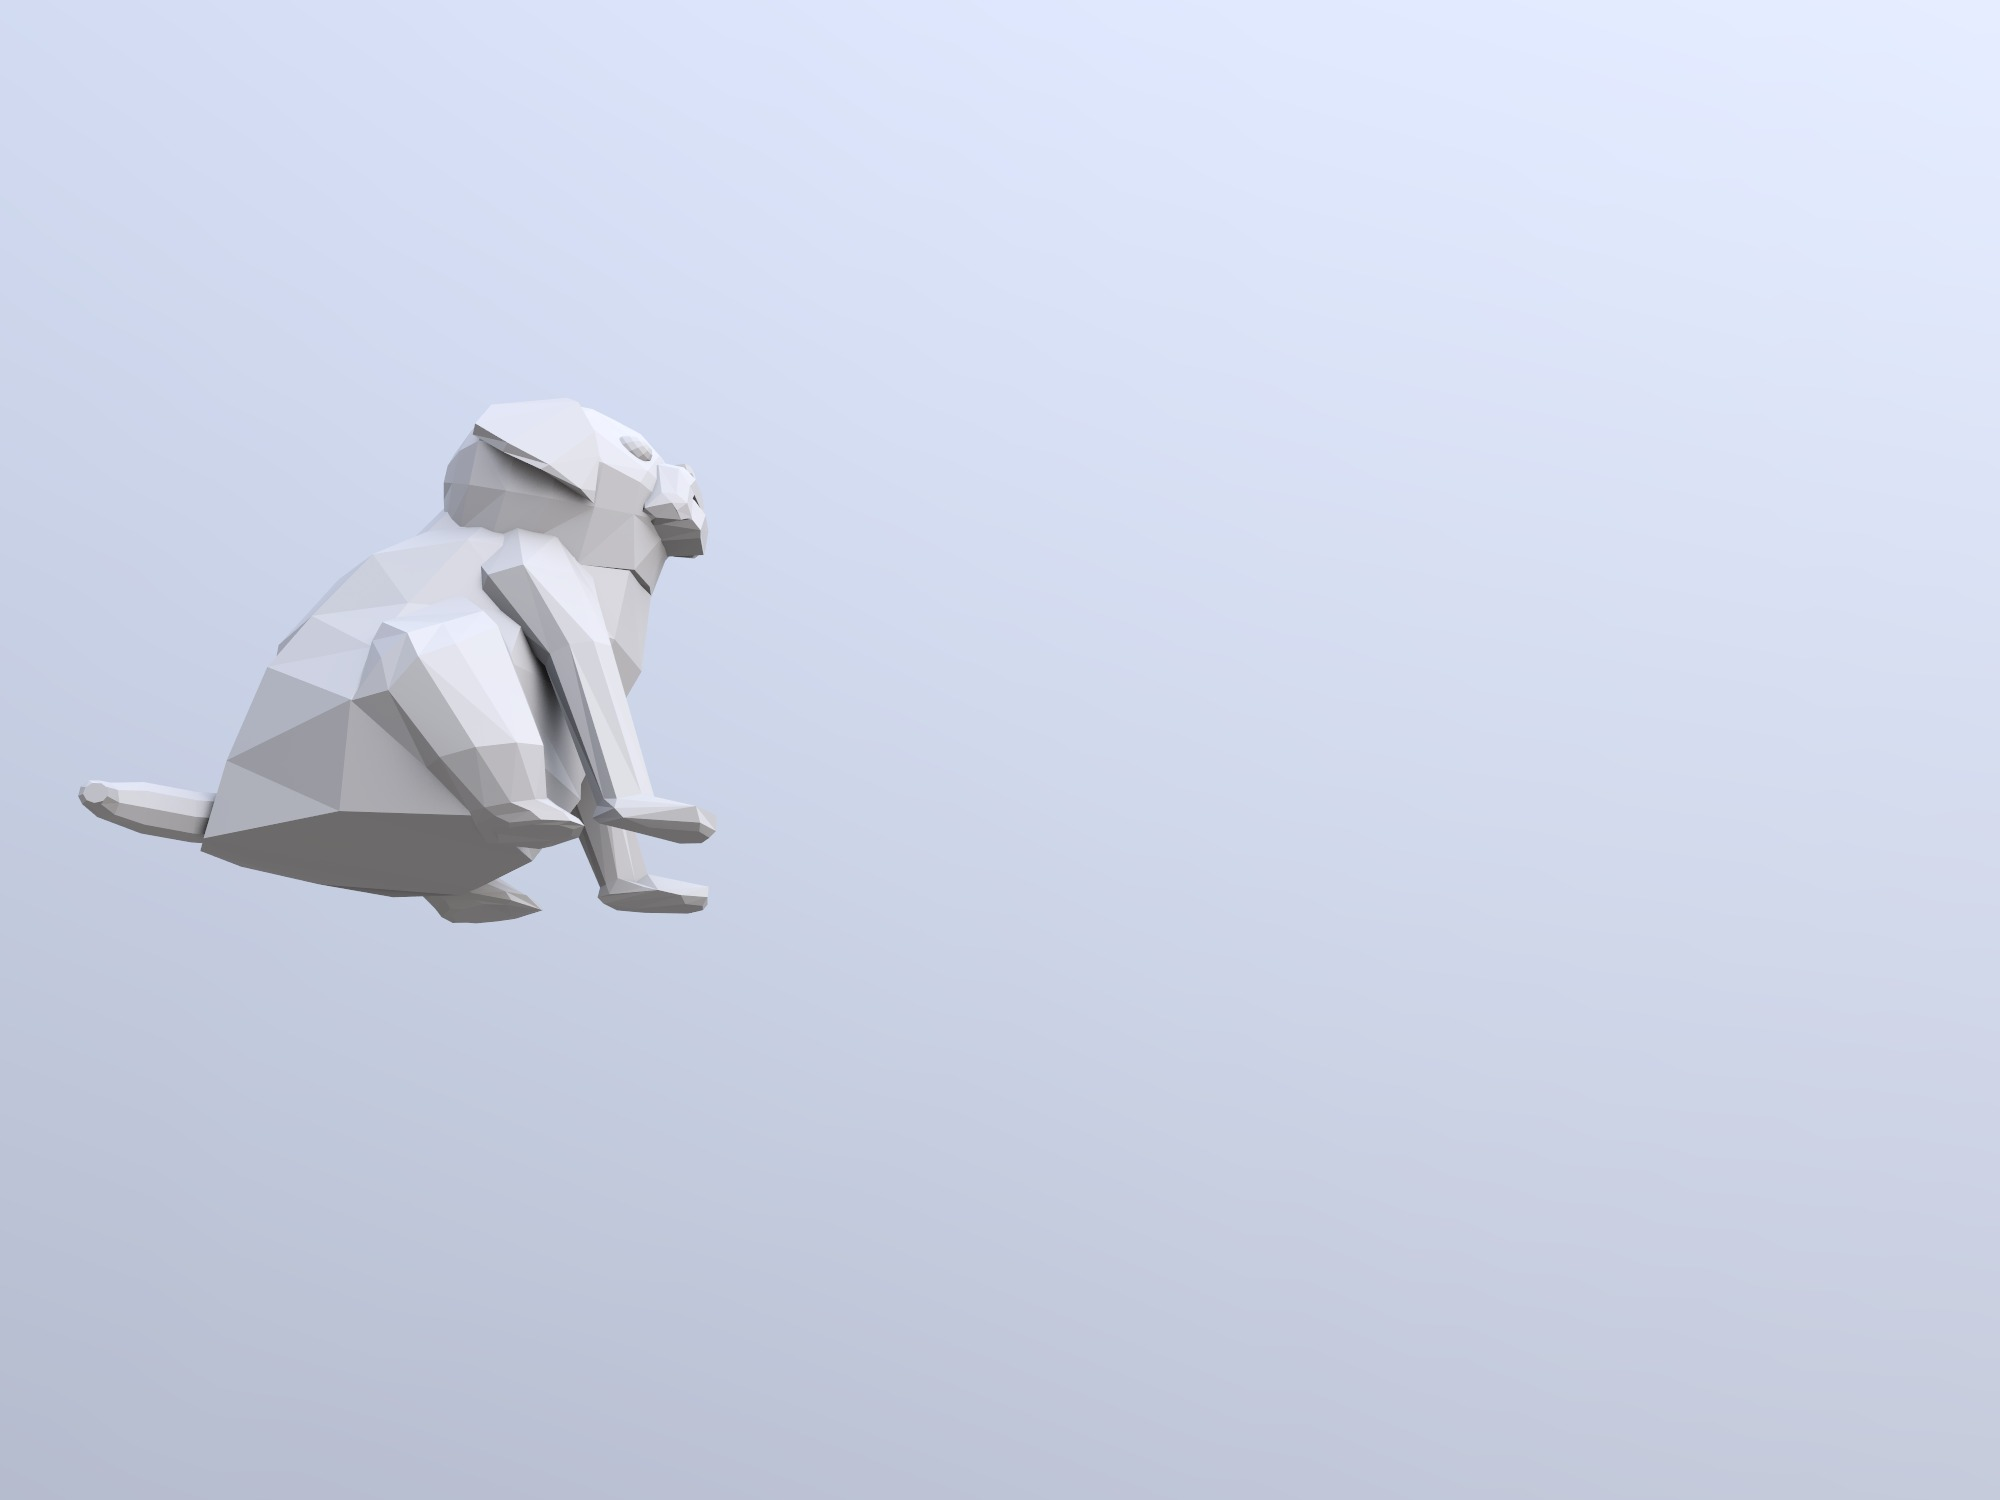 pug (copy) - 3D design by Carla Piñeiros Costales on Jan 17, 2019